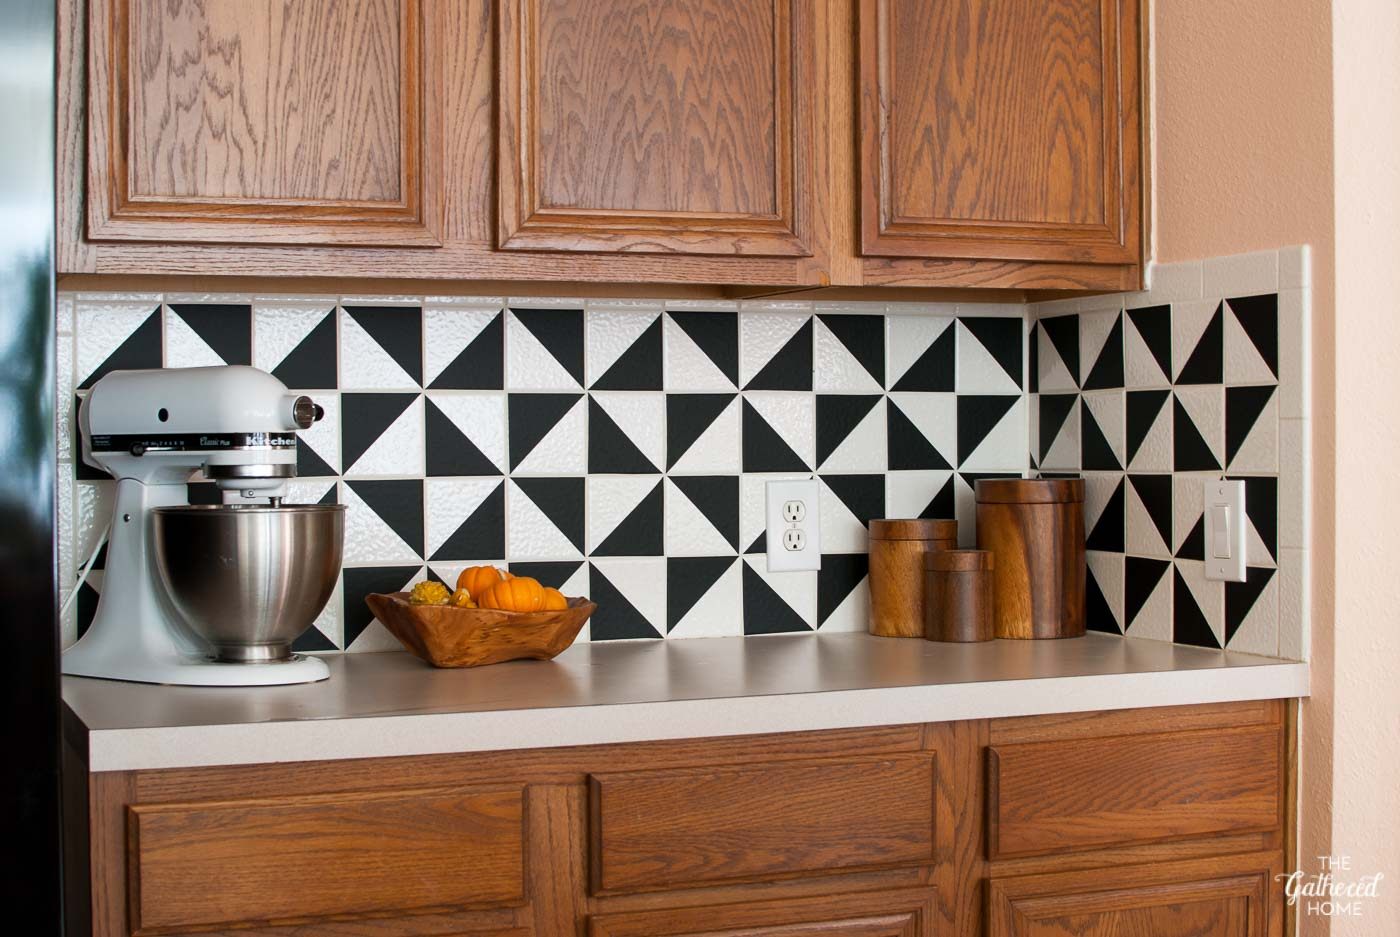 Backsplash tin tiles